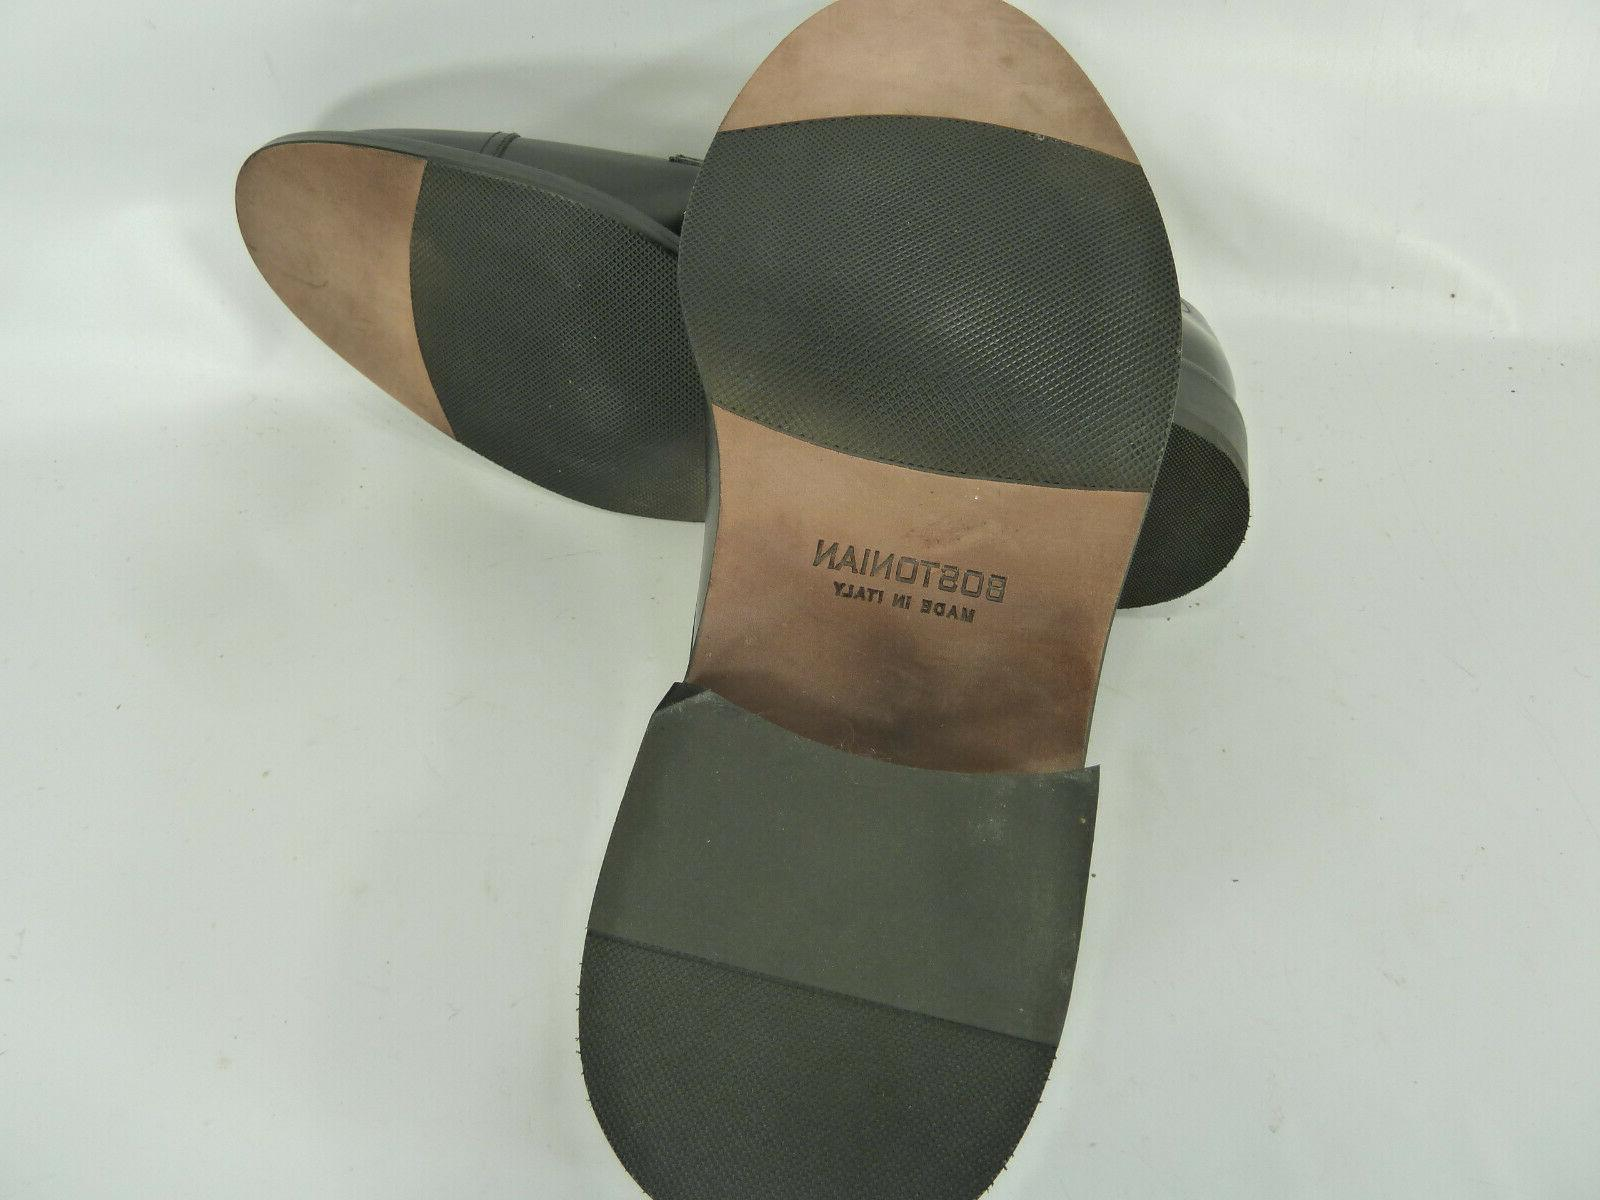 Oxford Shoes 9.5 M, Made Italy